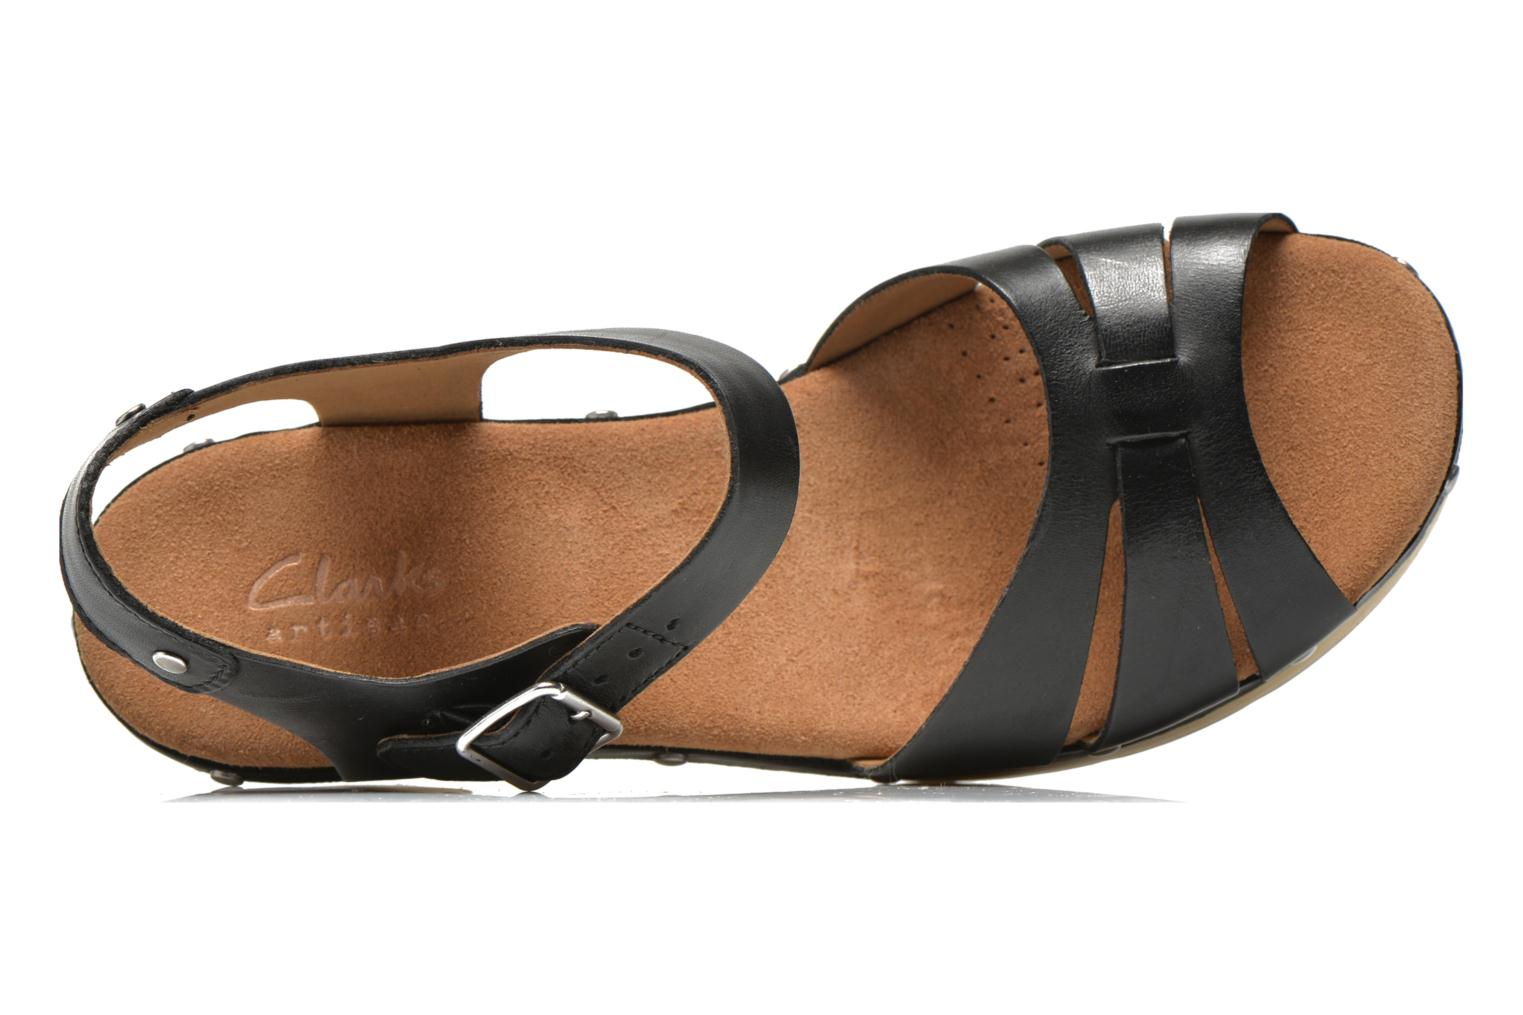 Ledella Trail Black leather